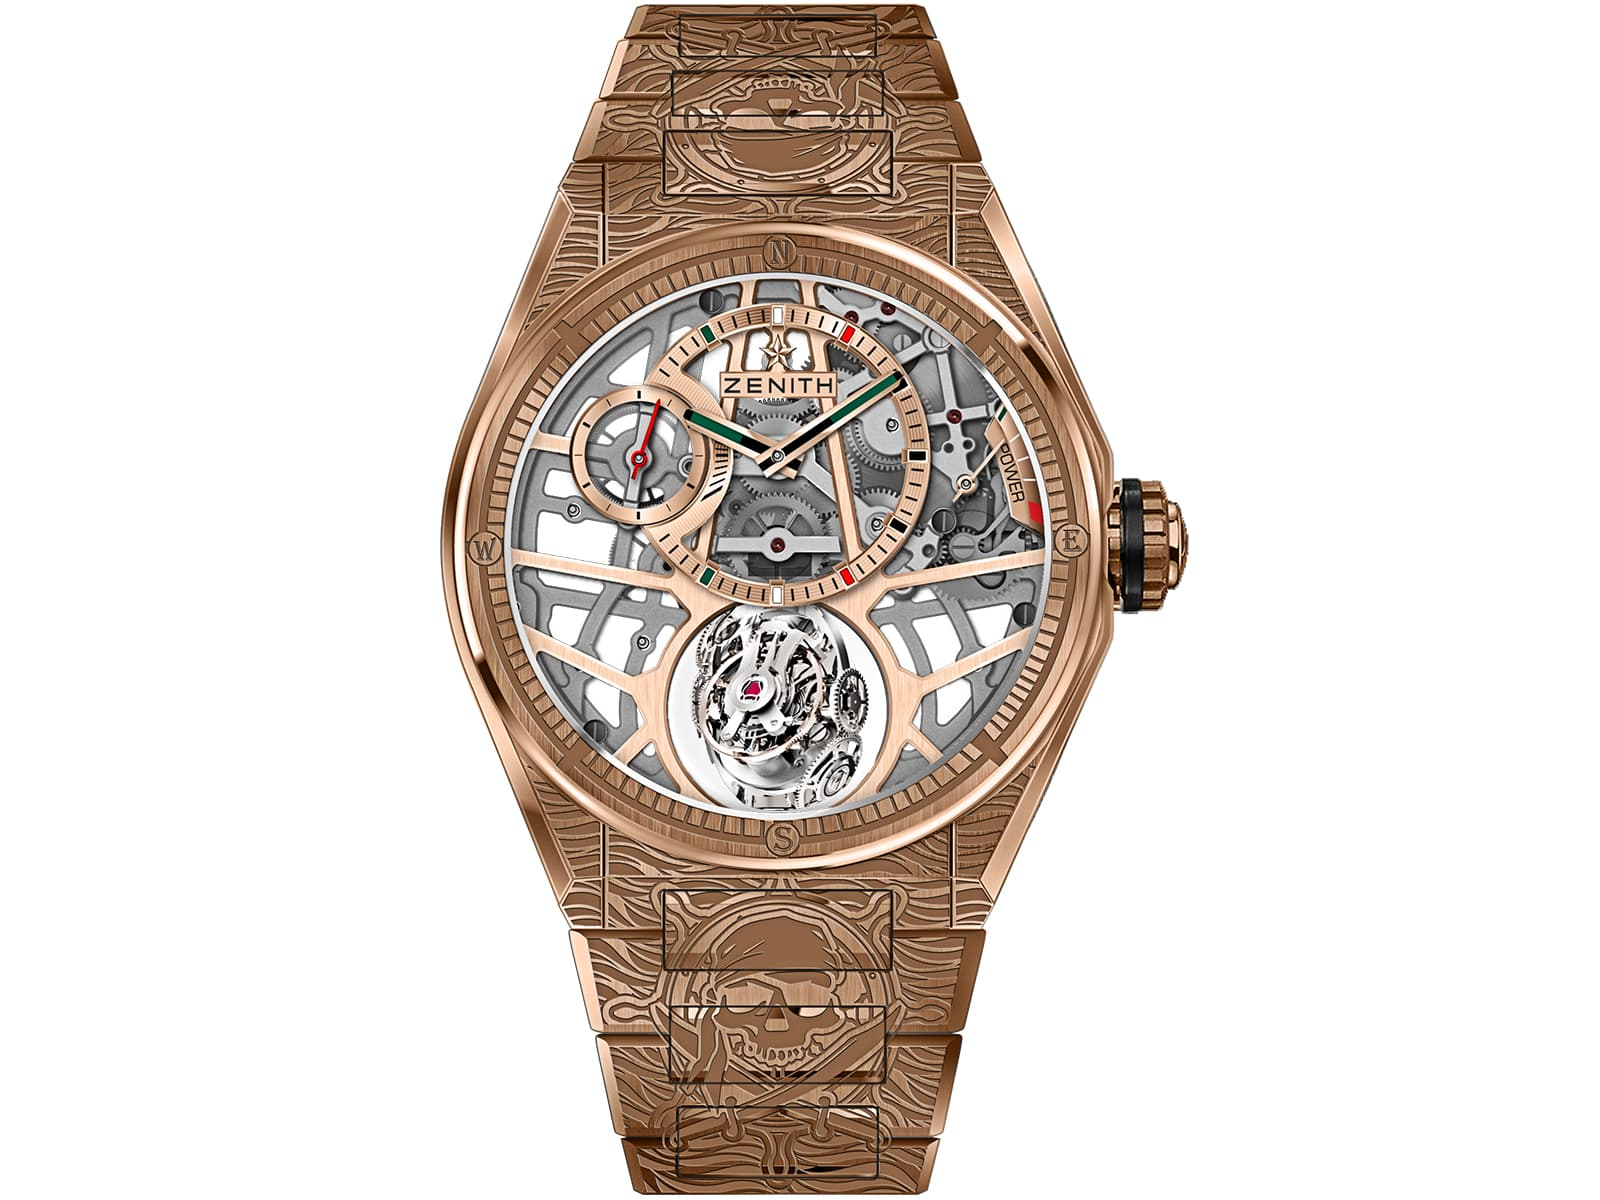 18-9003-8812-76-m9003-zenith-defy-zero-g-pirates-edition-rose-gold-.jpg